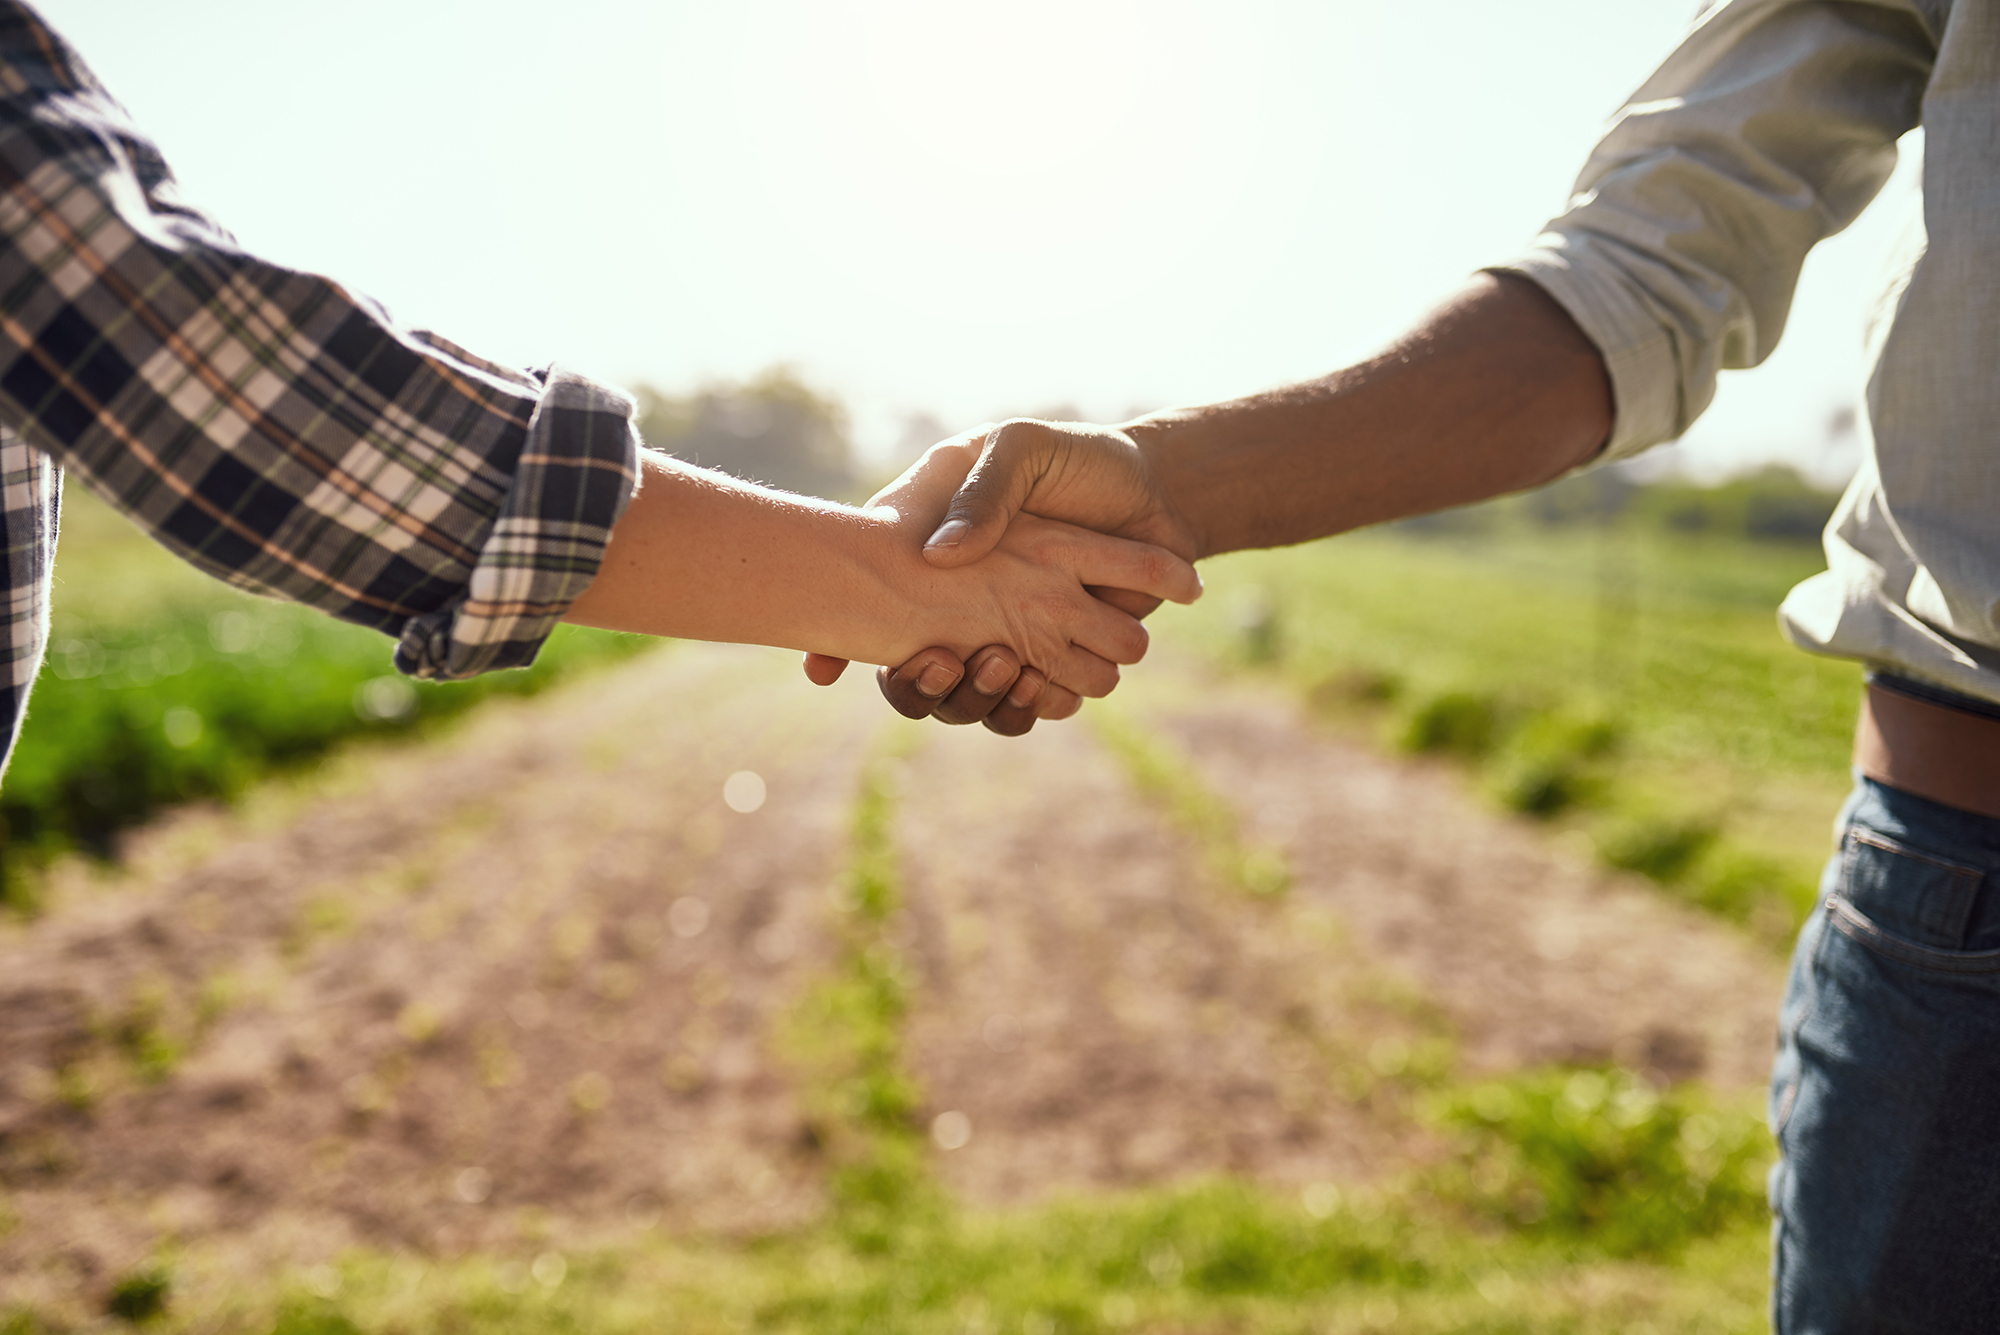 Two people shaking hands in a farmer's field.